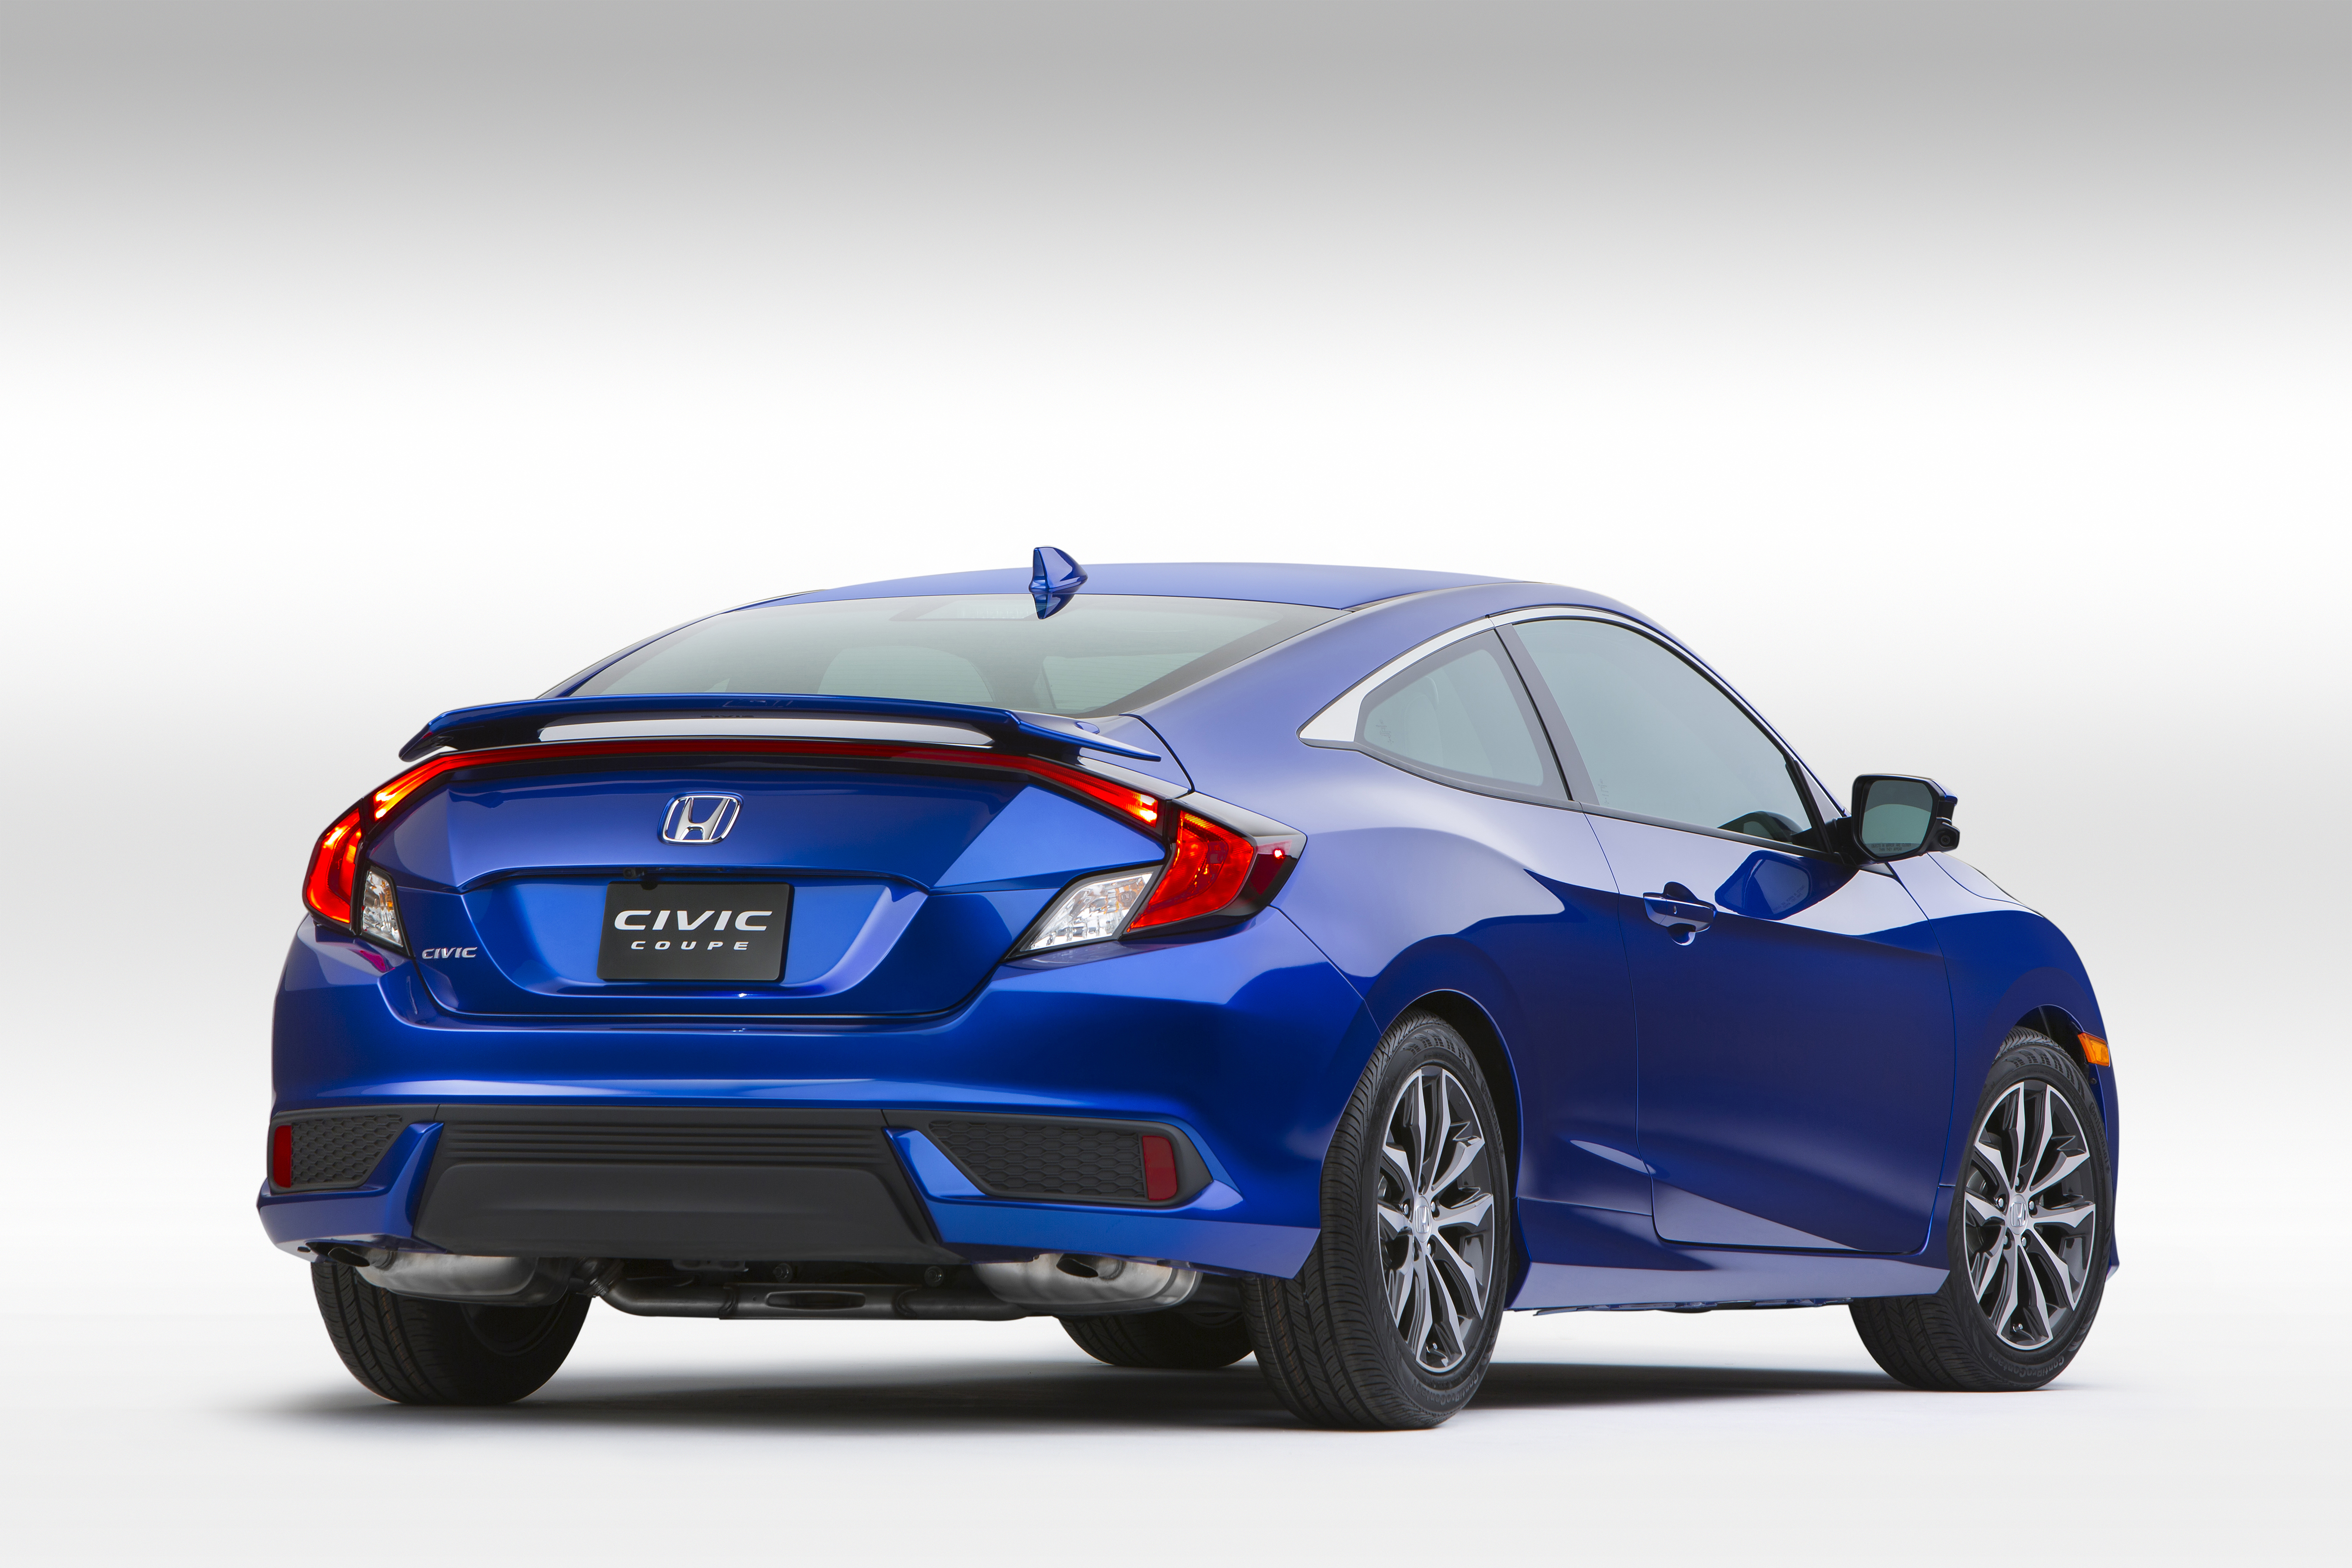 2016 honda civic 1 5l turbo faster than 9th gen civic si. Black Bedroom Furniture Sets. Home Design Ideas